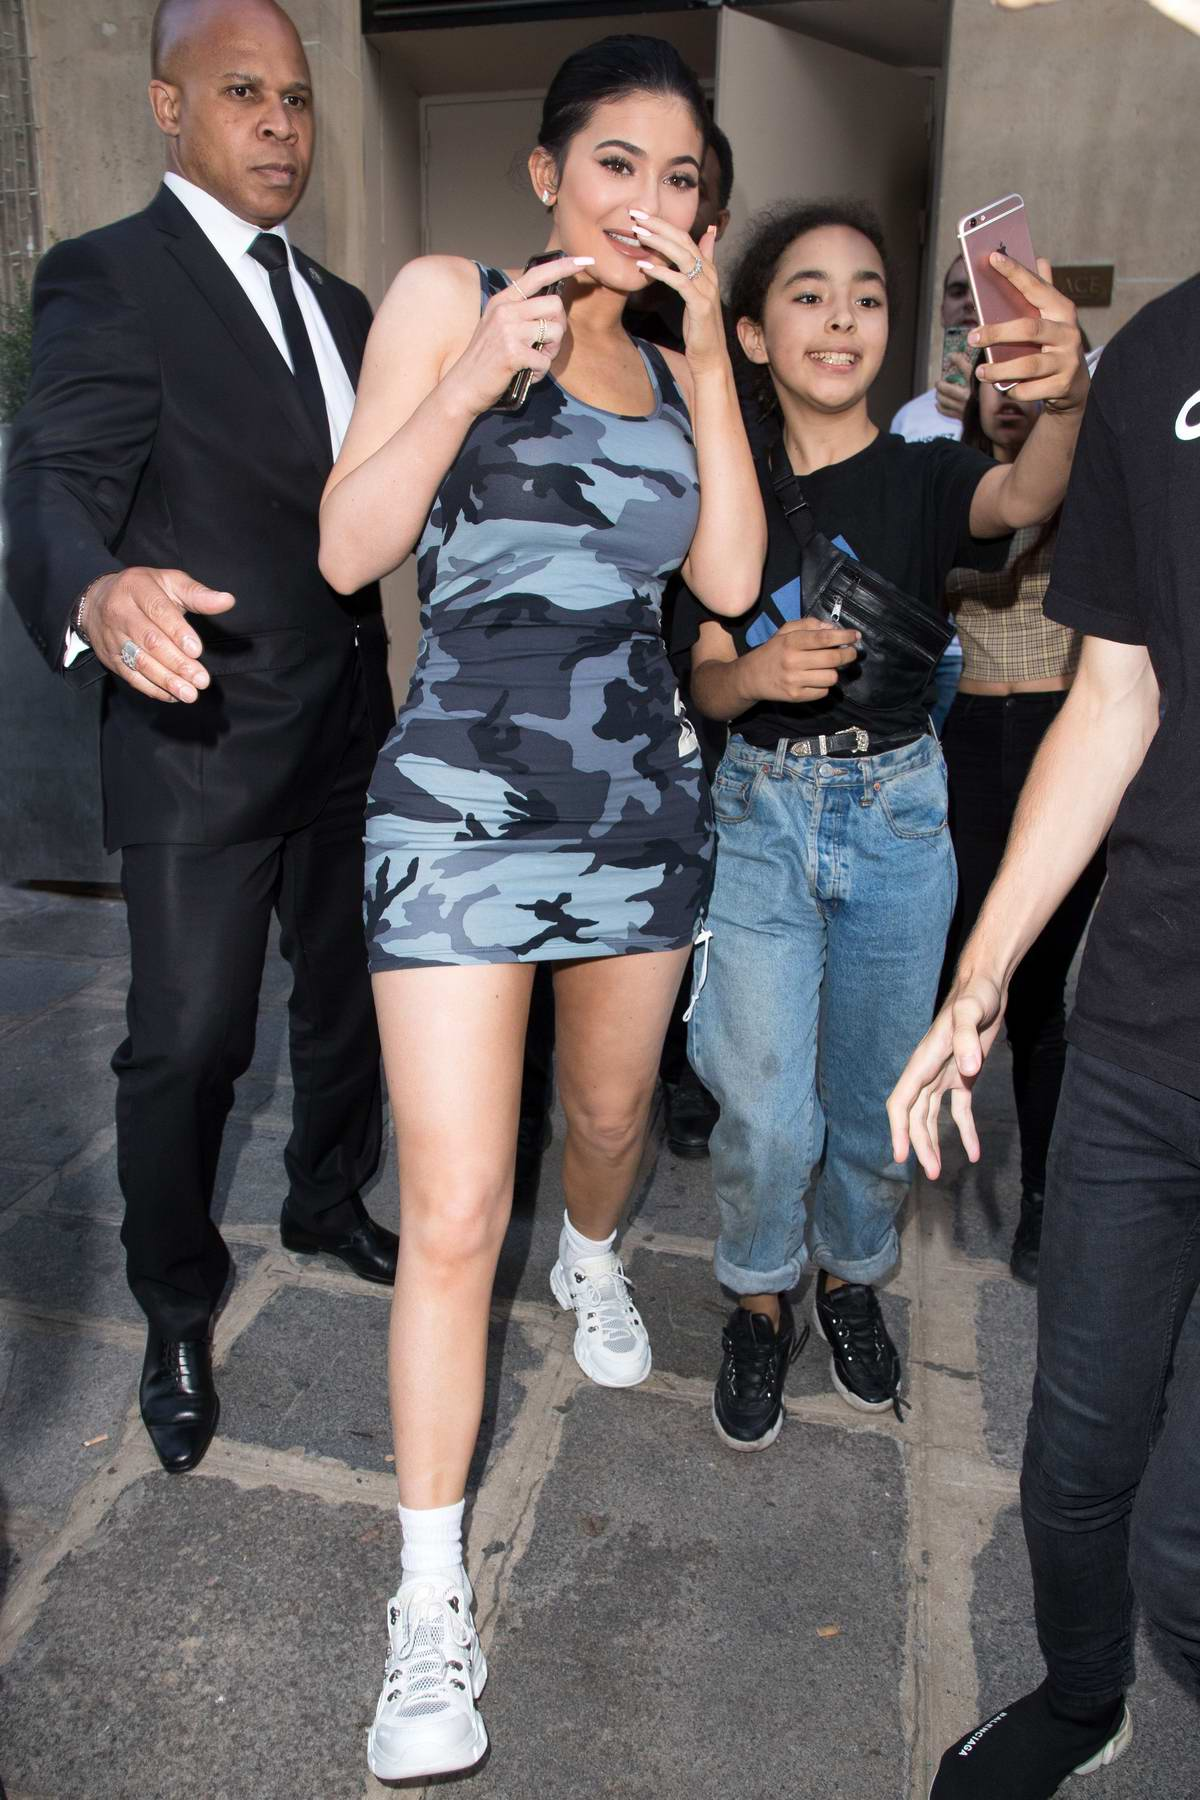 Kylie Jenner wearing a camo dress as she leaves her hotel in Paris, France